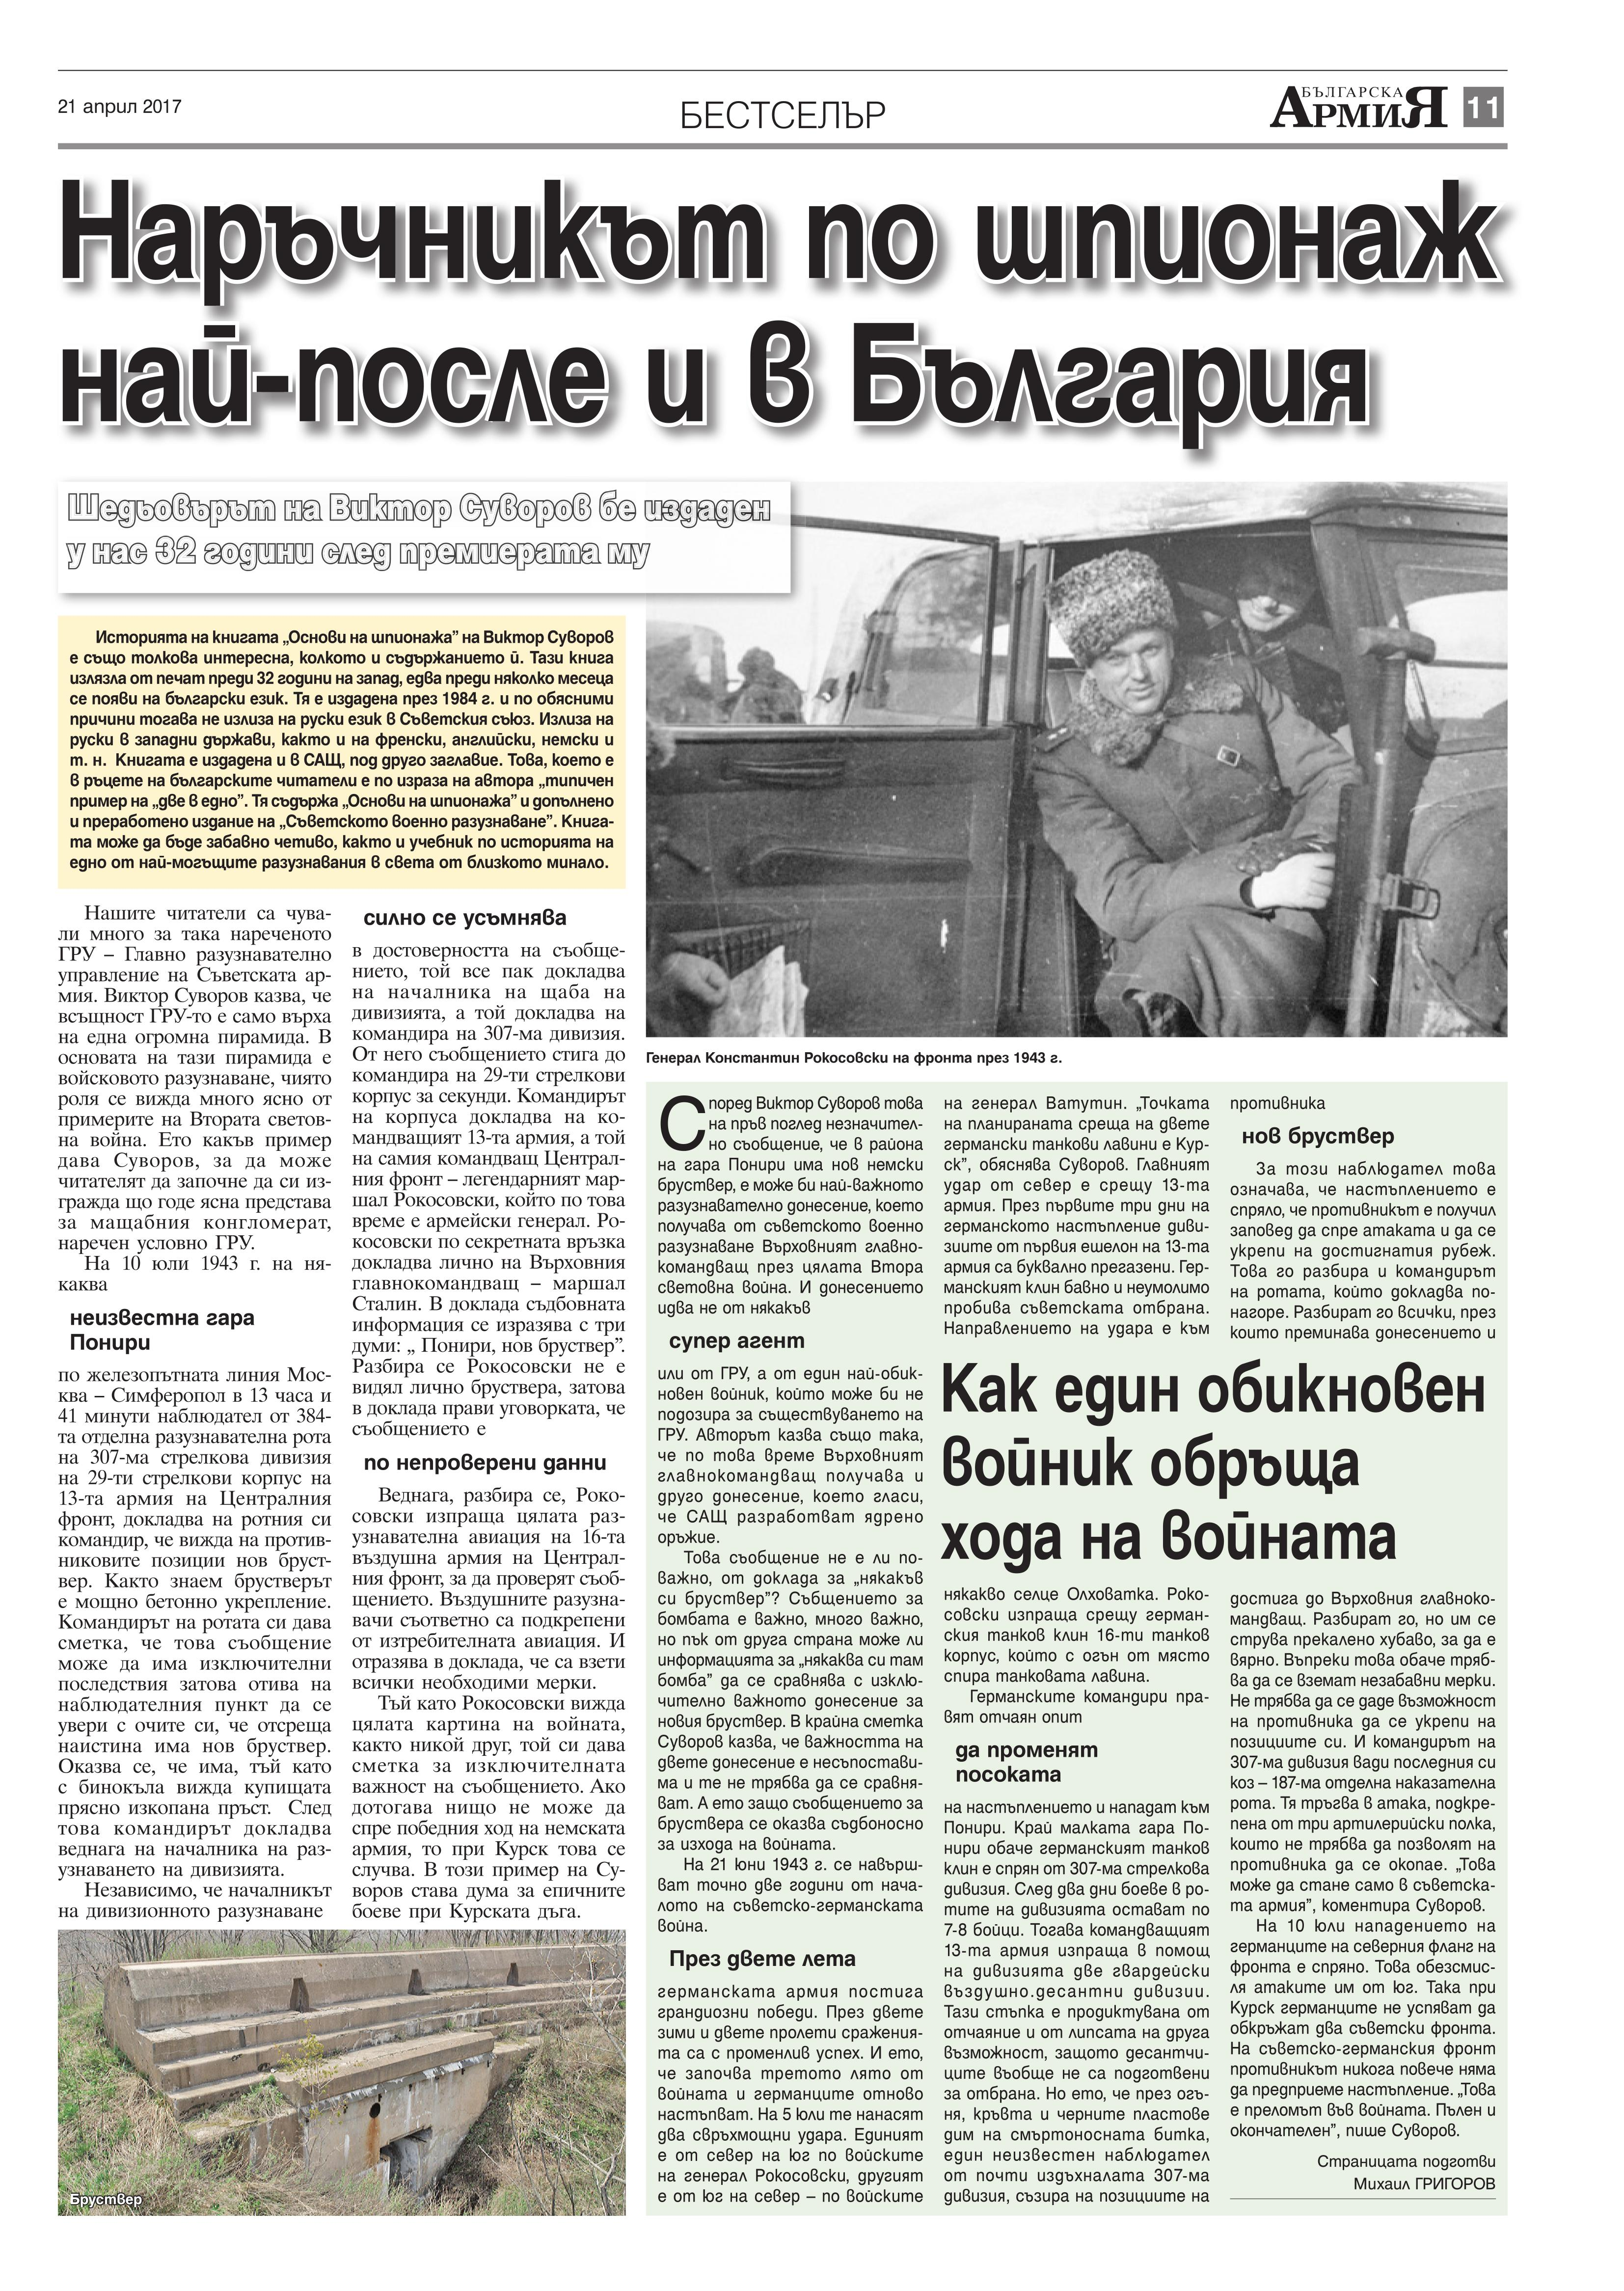 https://www.armymedia.bg/wp-content/uploads/2015/06/11.page1_-19.jpg